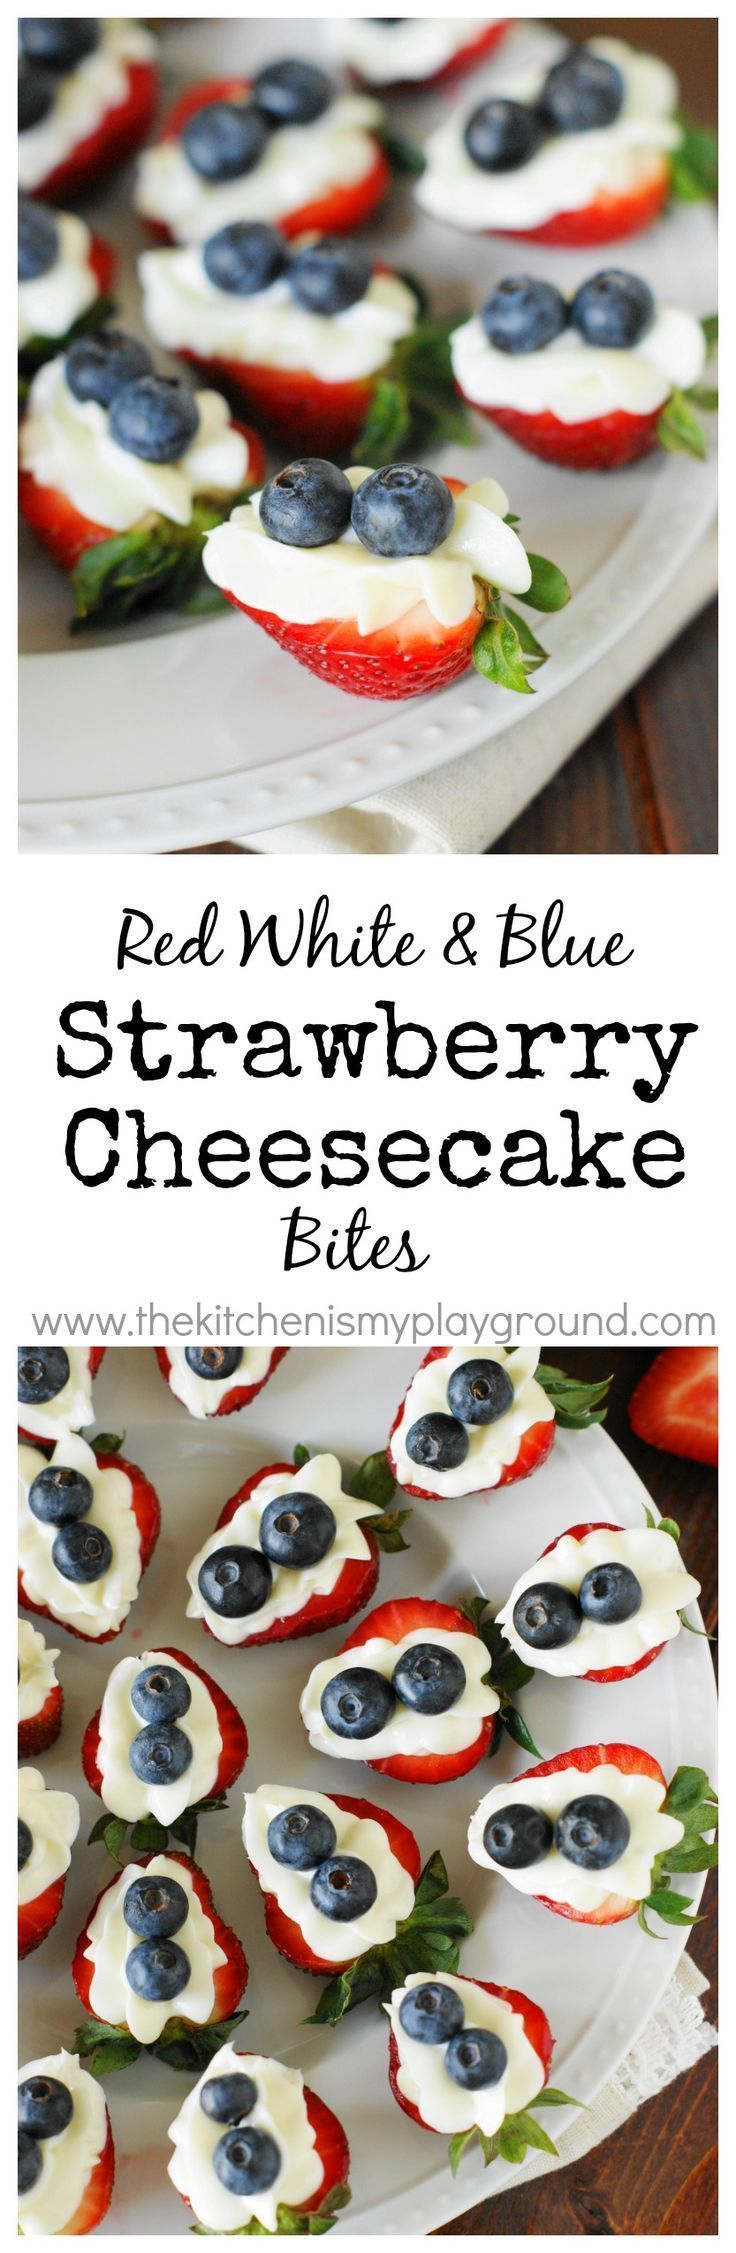 Red, White & Blue Strawberry Cheesecake Bites ~ an easy little 4th of July {or ANY time} treat.   www.thekitchenism...